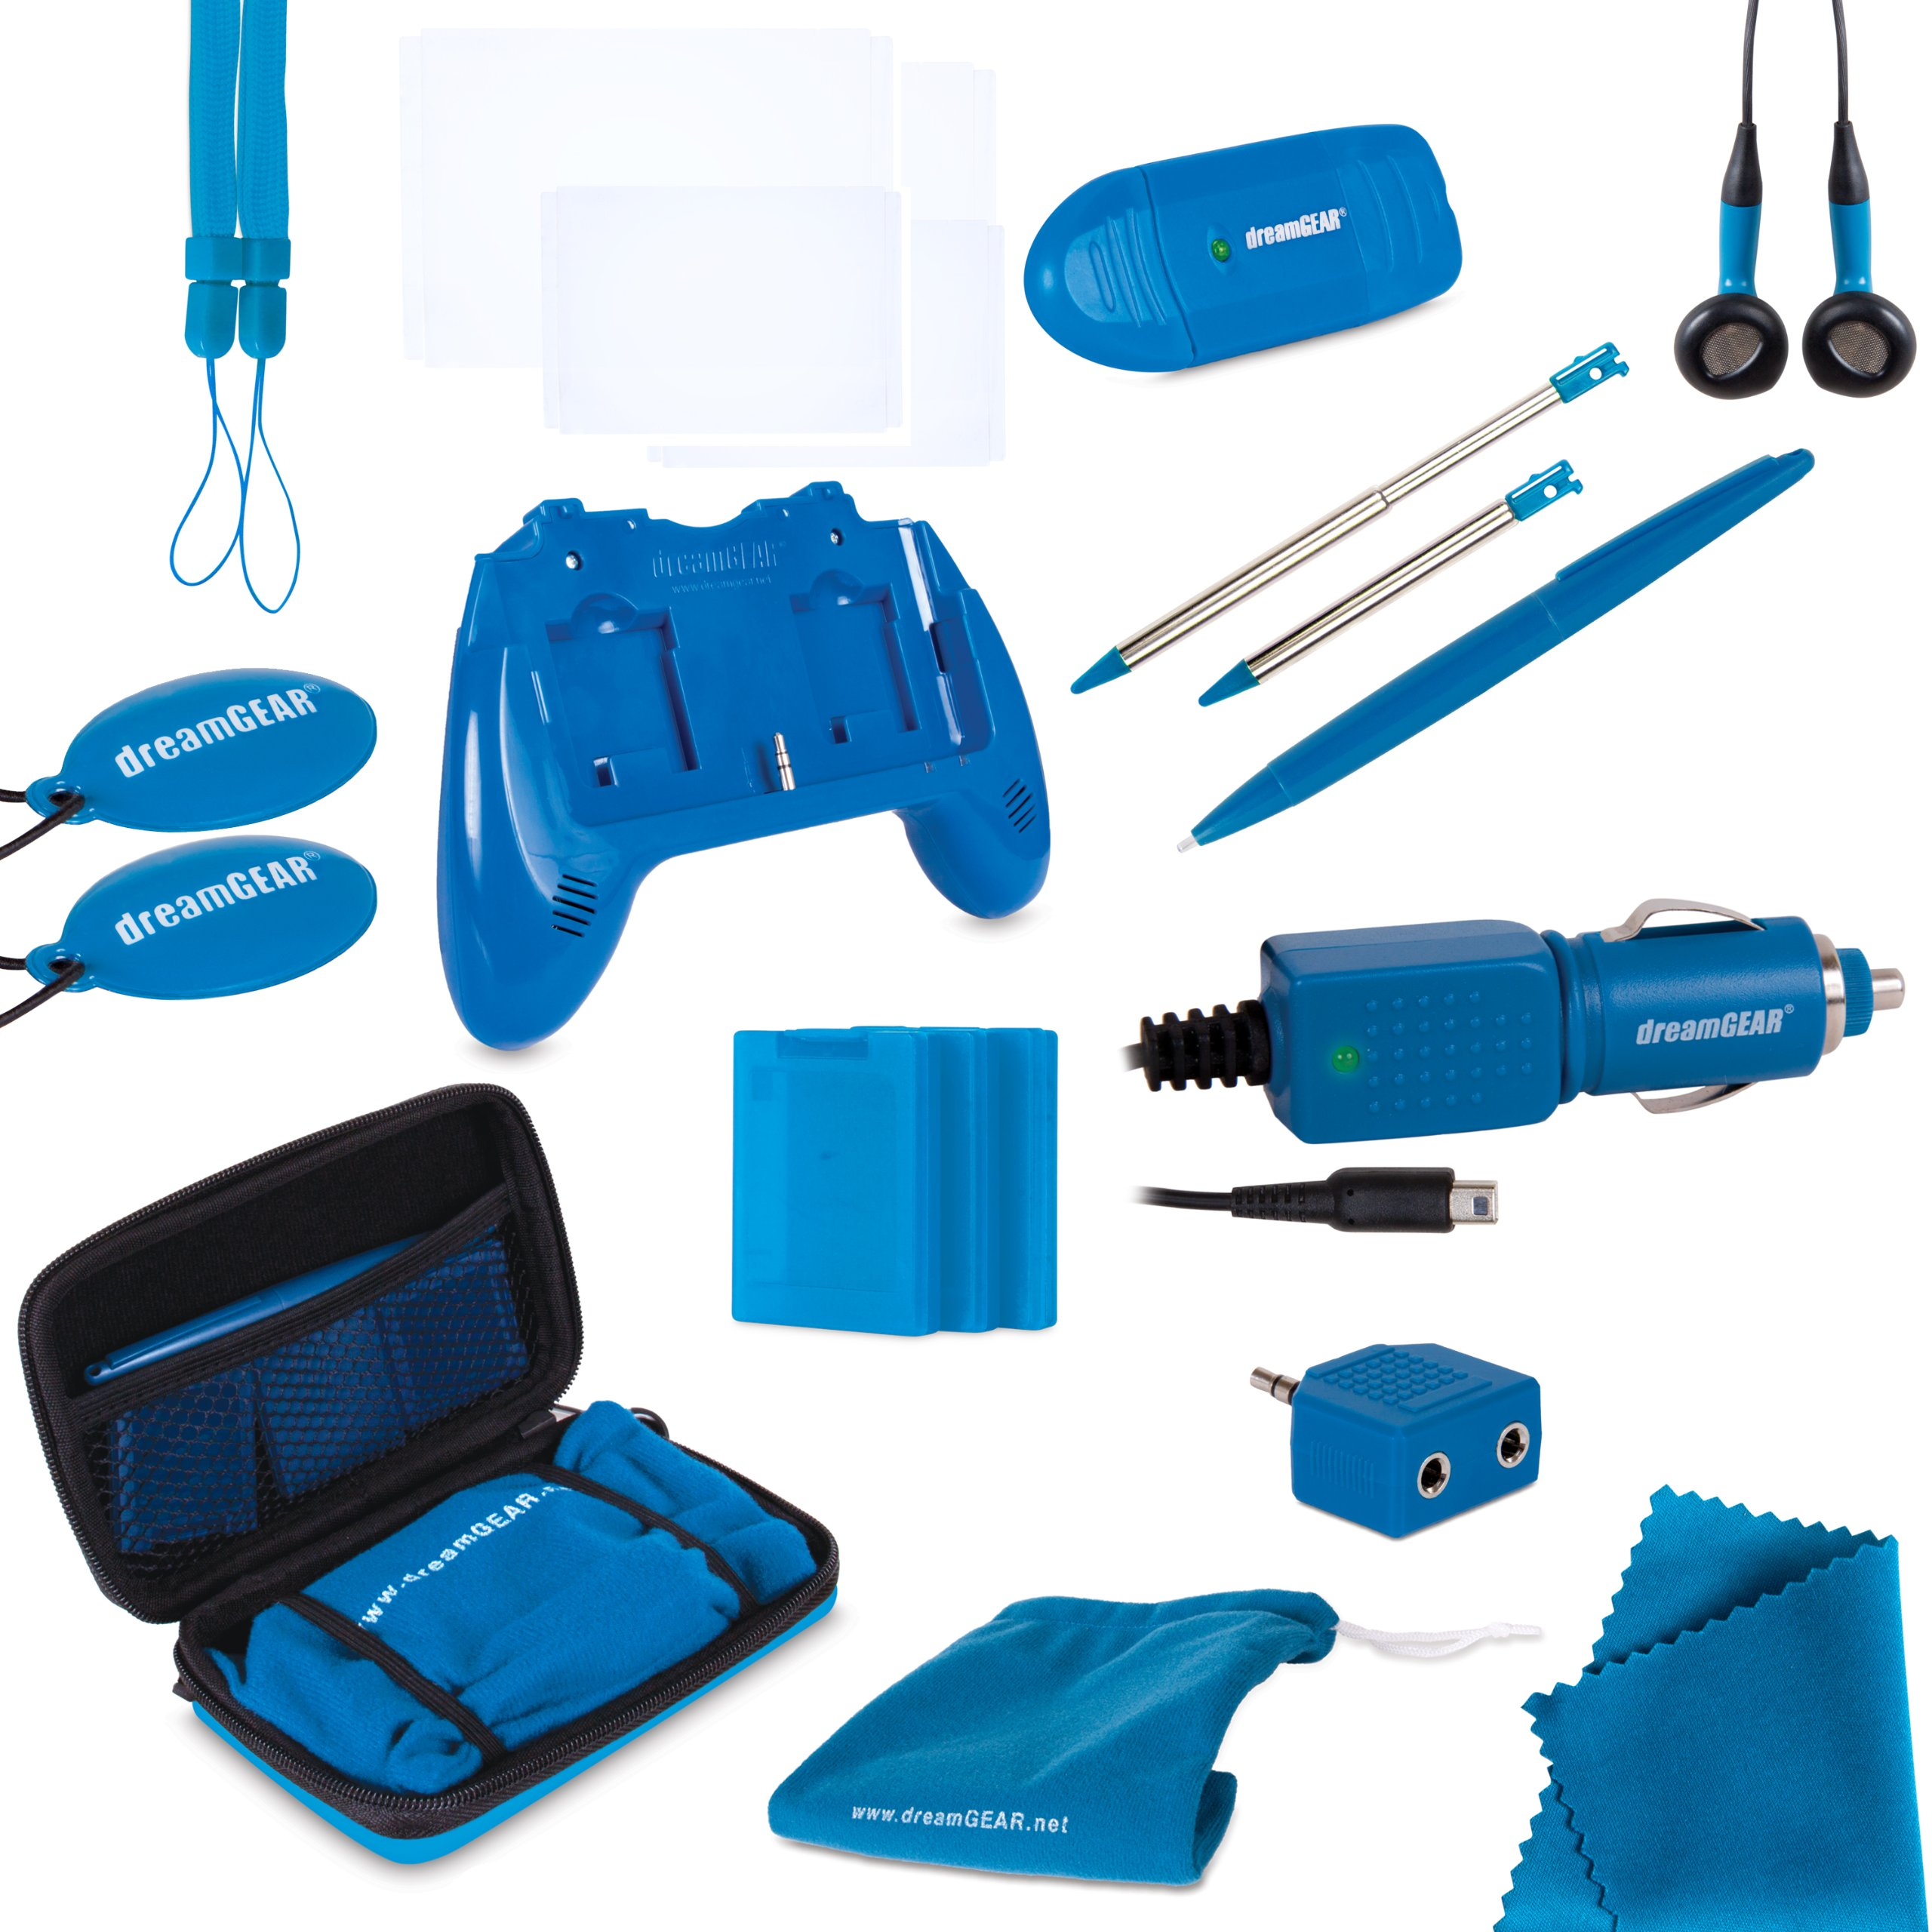 dreamGEAR Nintendo 3DS 20-in-1 Essentials Kit (blue) by dreamGEAR (Image #1)